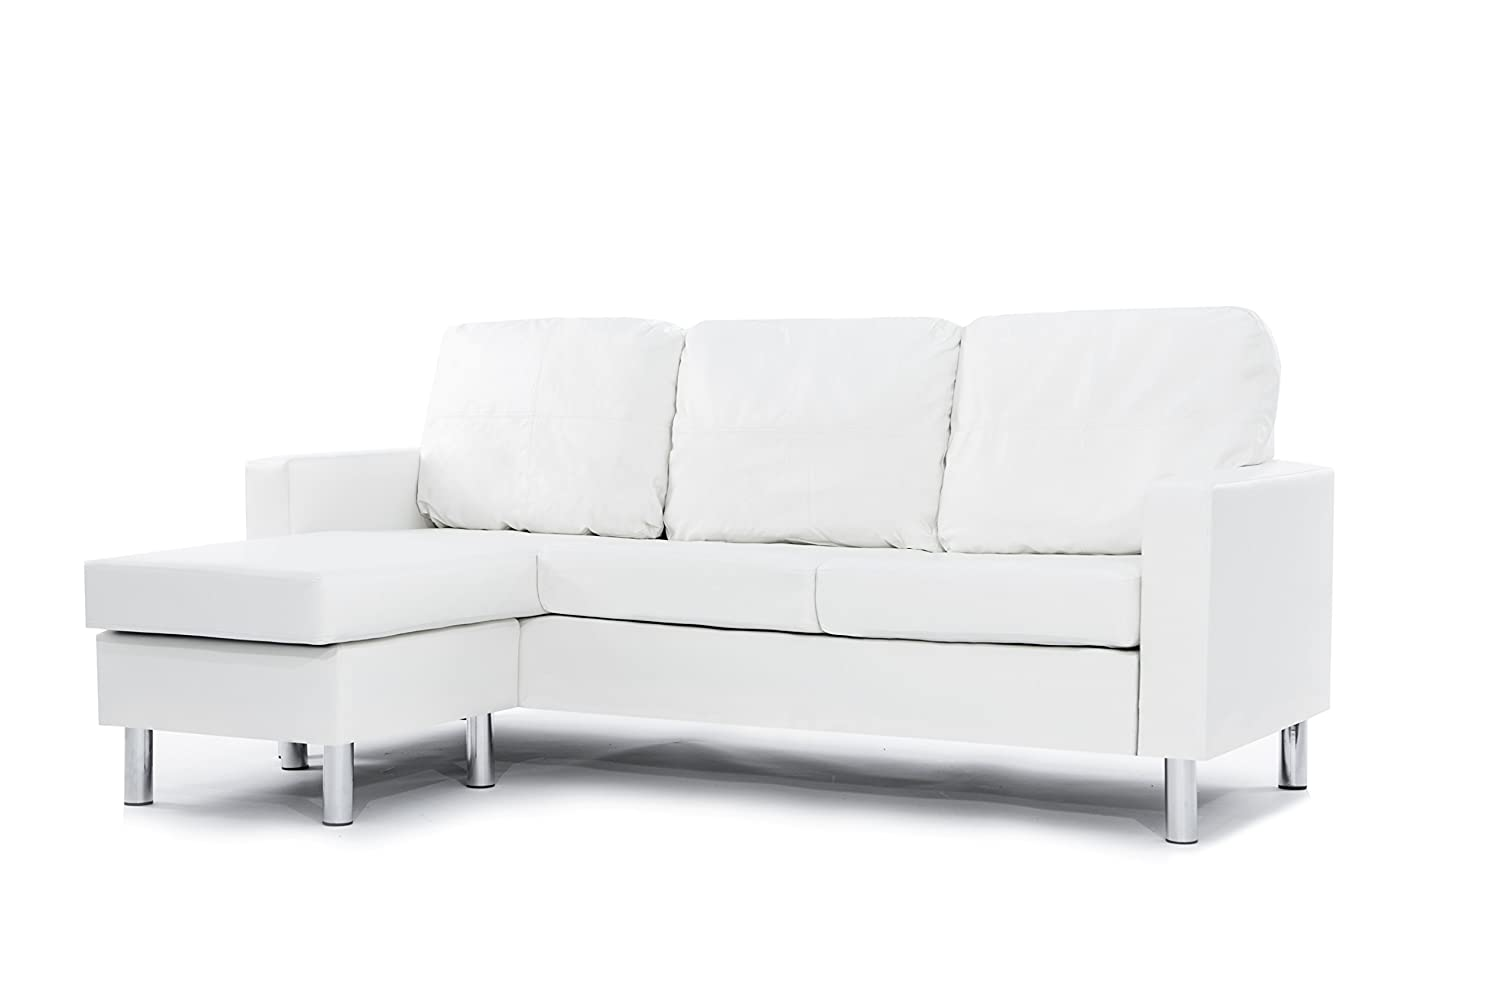 sale comfy shelf sofa white full size with photo hickory splendid of sofawhite end modern setables and ikea sectional table cushions concept conceptable